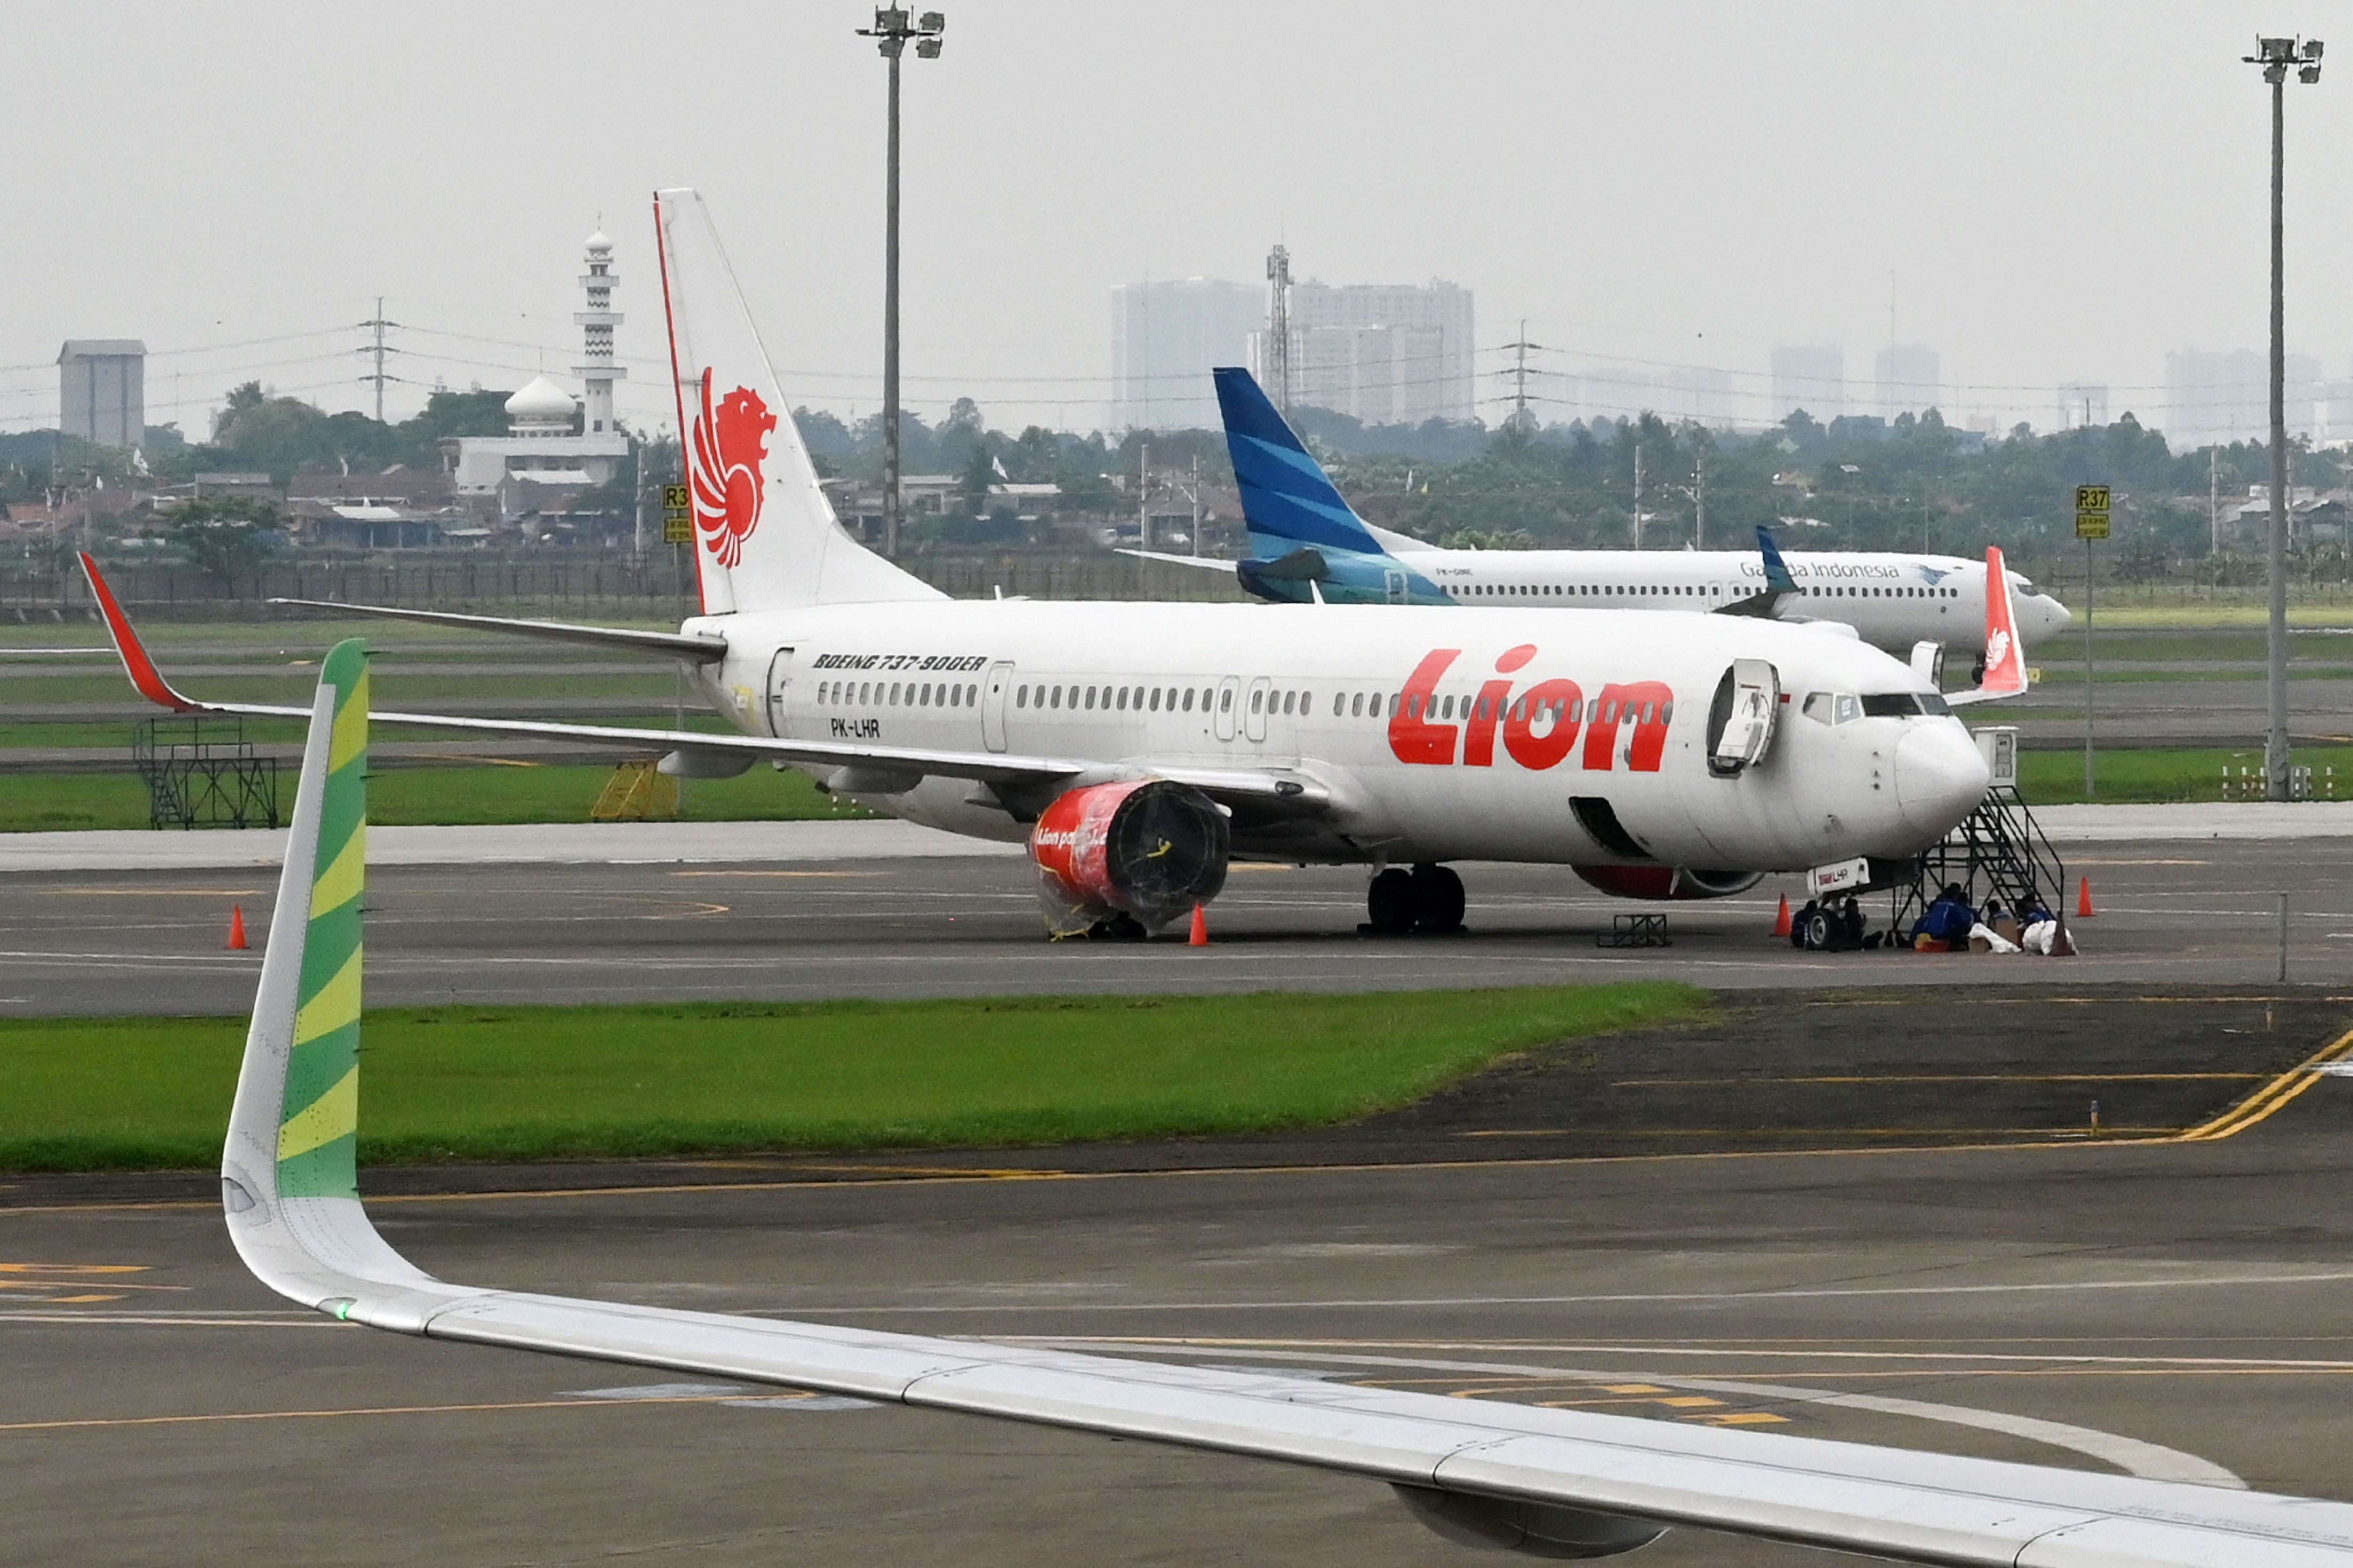 Lion Air Pilots Had Less Than a Minute to Avert Fatal Crash